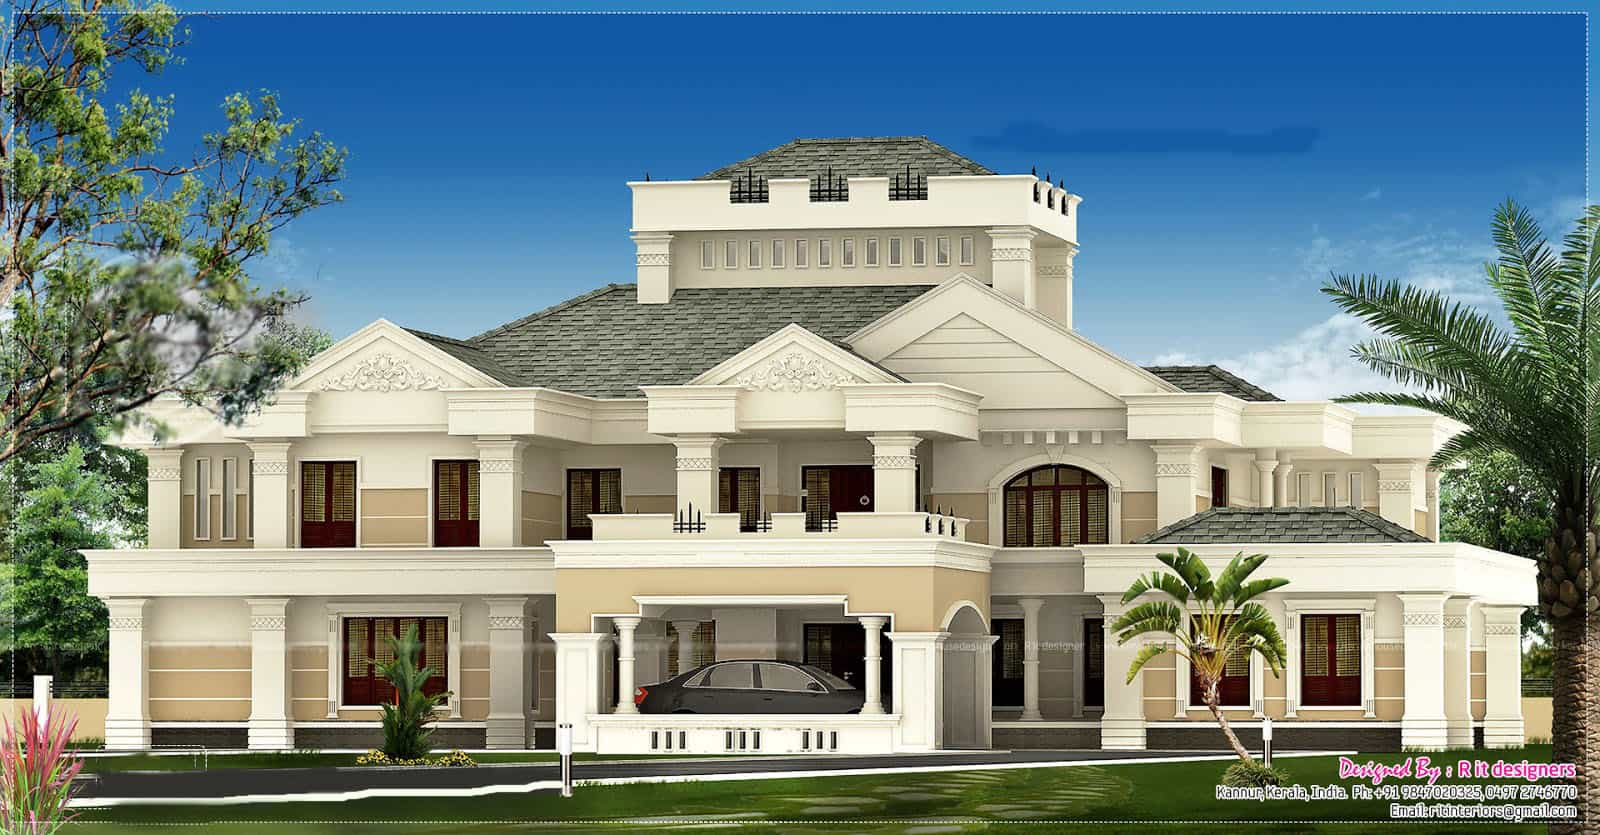 Good House Photos Of Luxurious Kerala Bungalow Design At 5676